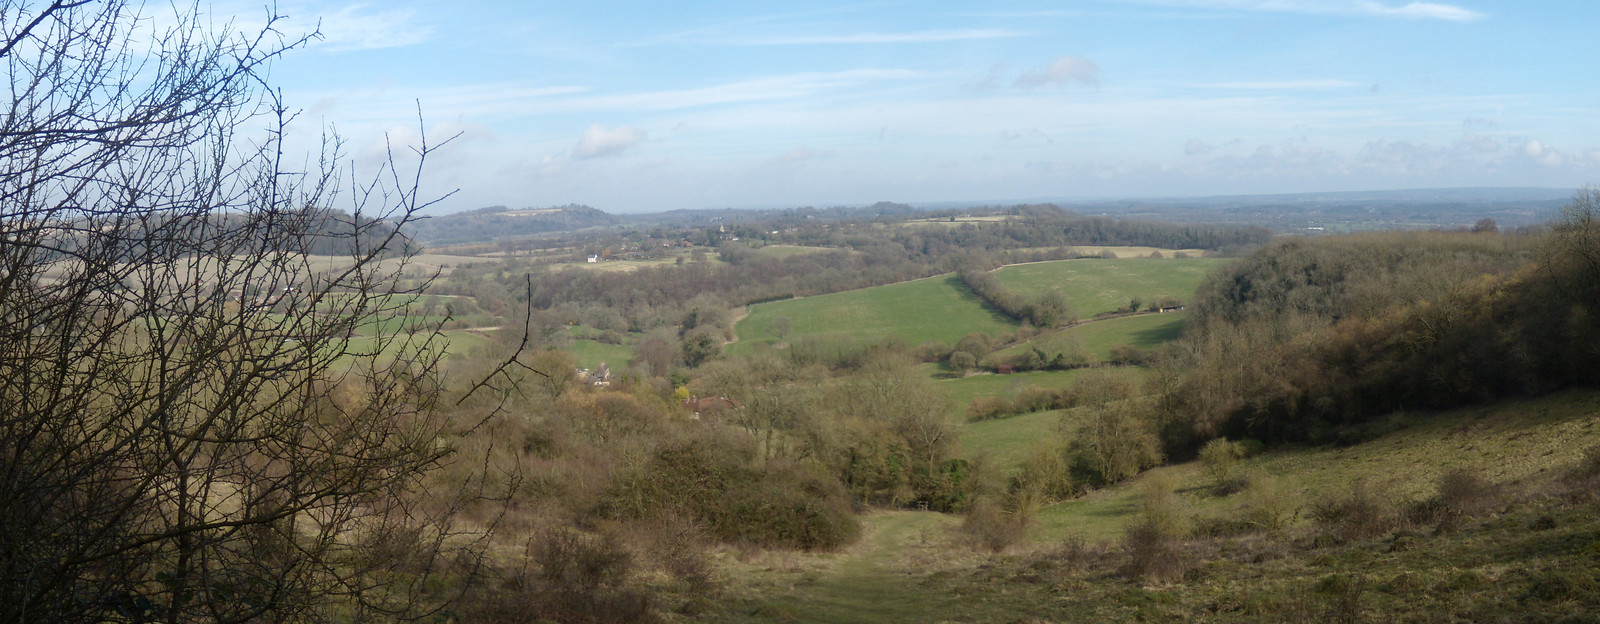 View from the hill Petersfield to Liss